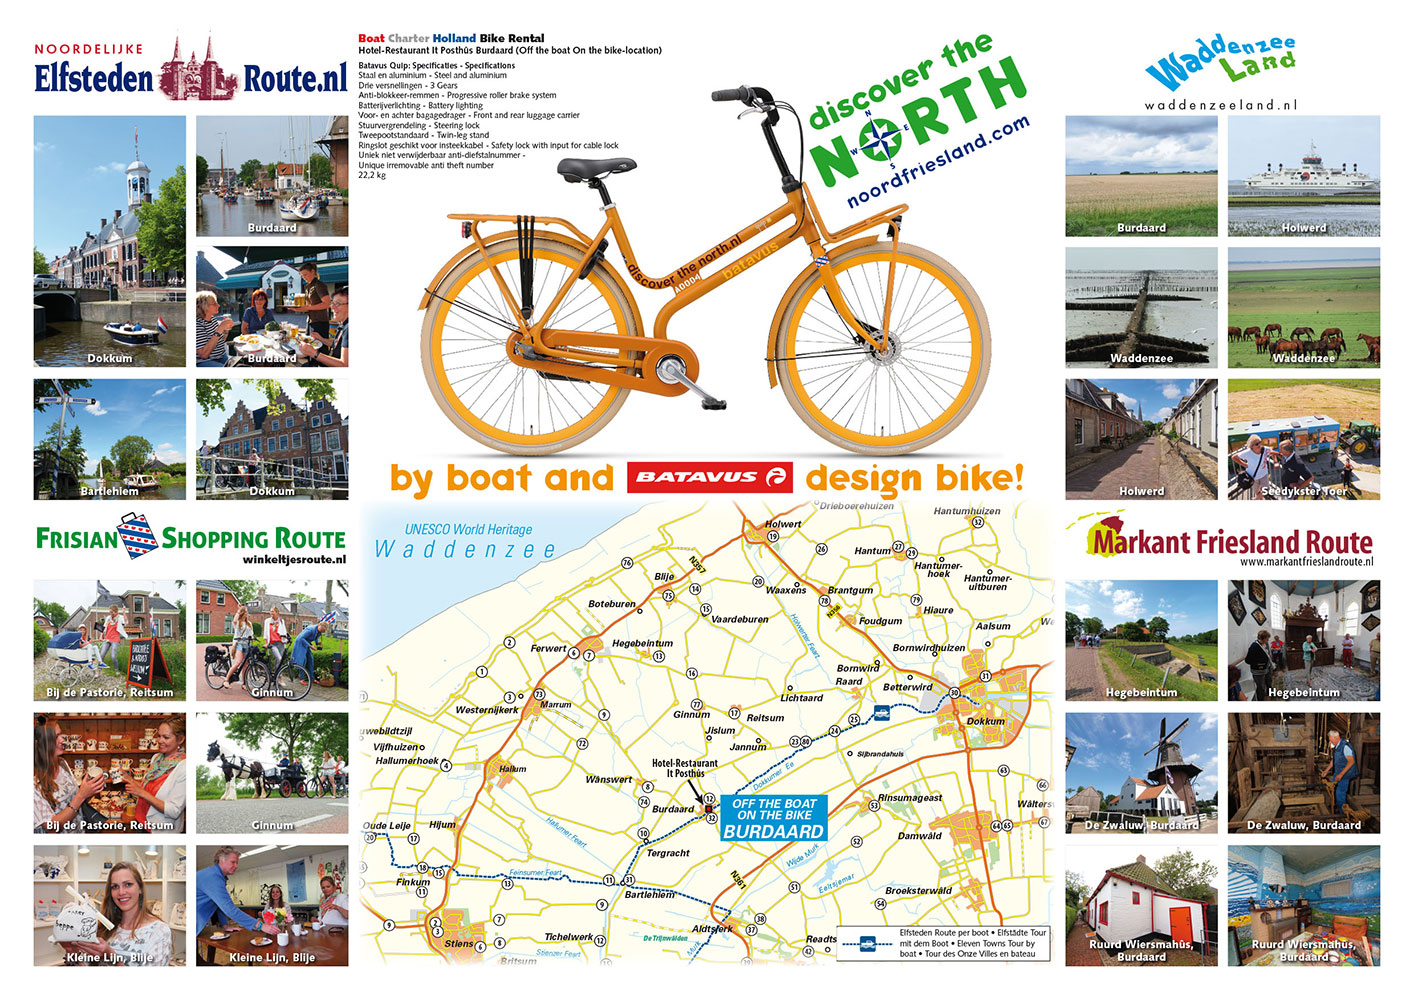 Advertentie van Discover the North voor watersportmagazines. Een vier routes overkoepelende website is in de maak.